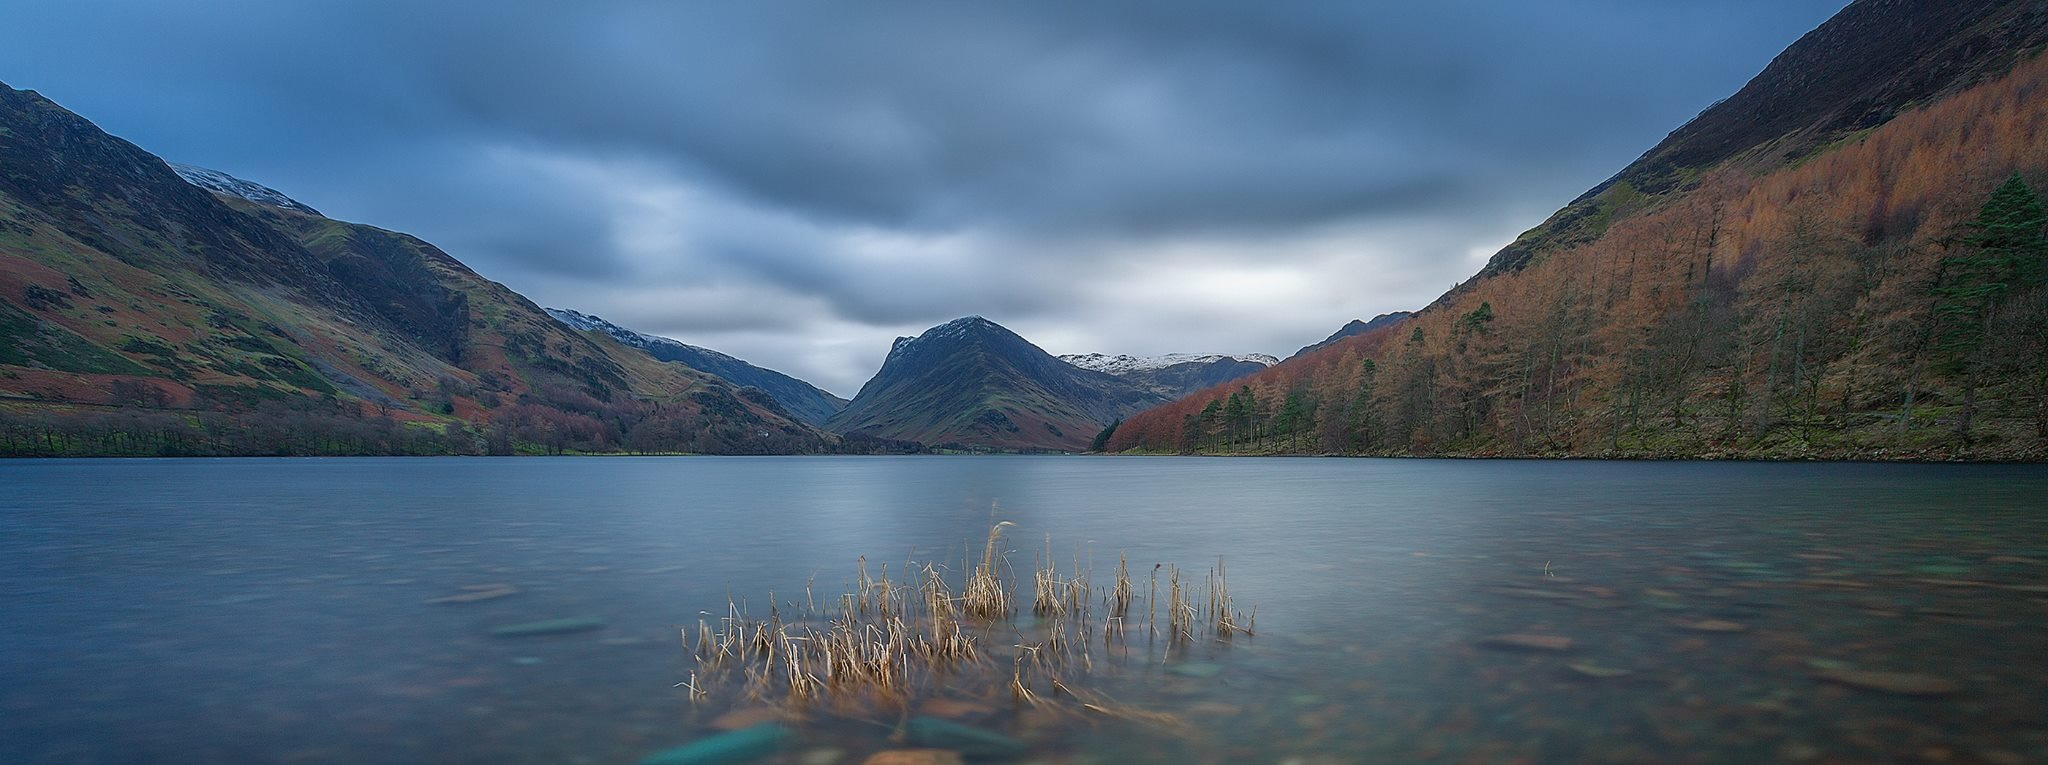 Buttermere - The view to Fleetwith Pike  by Gray Smith